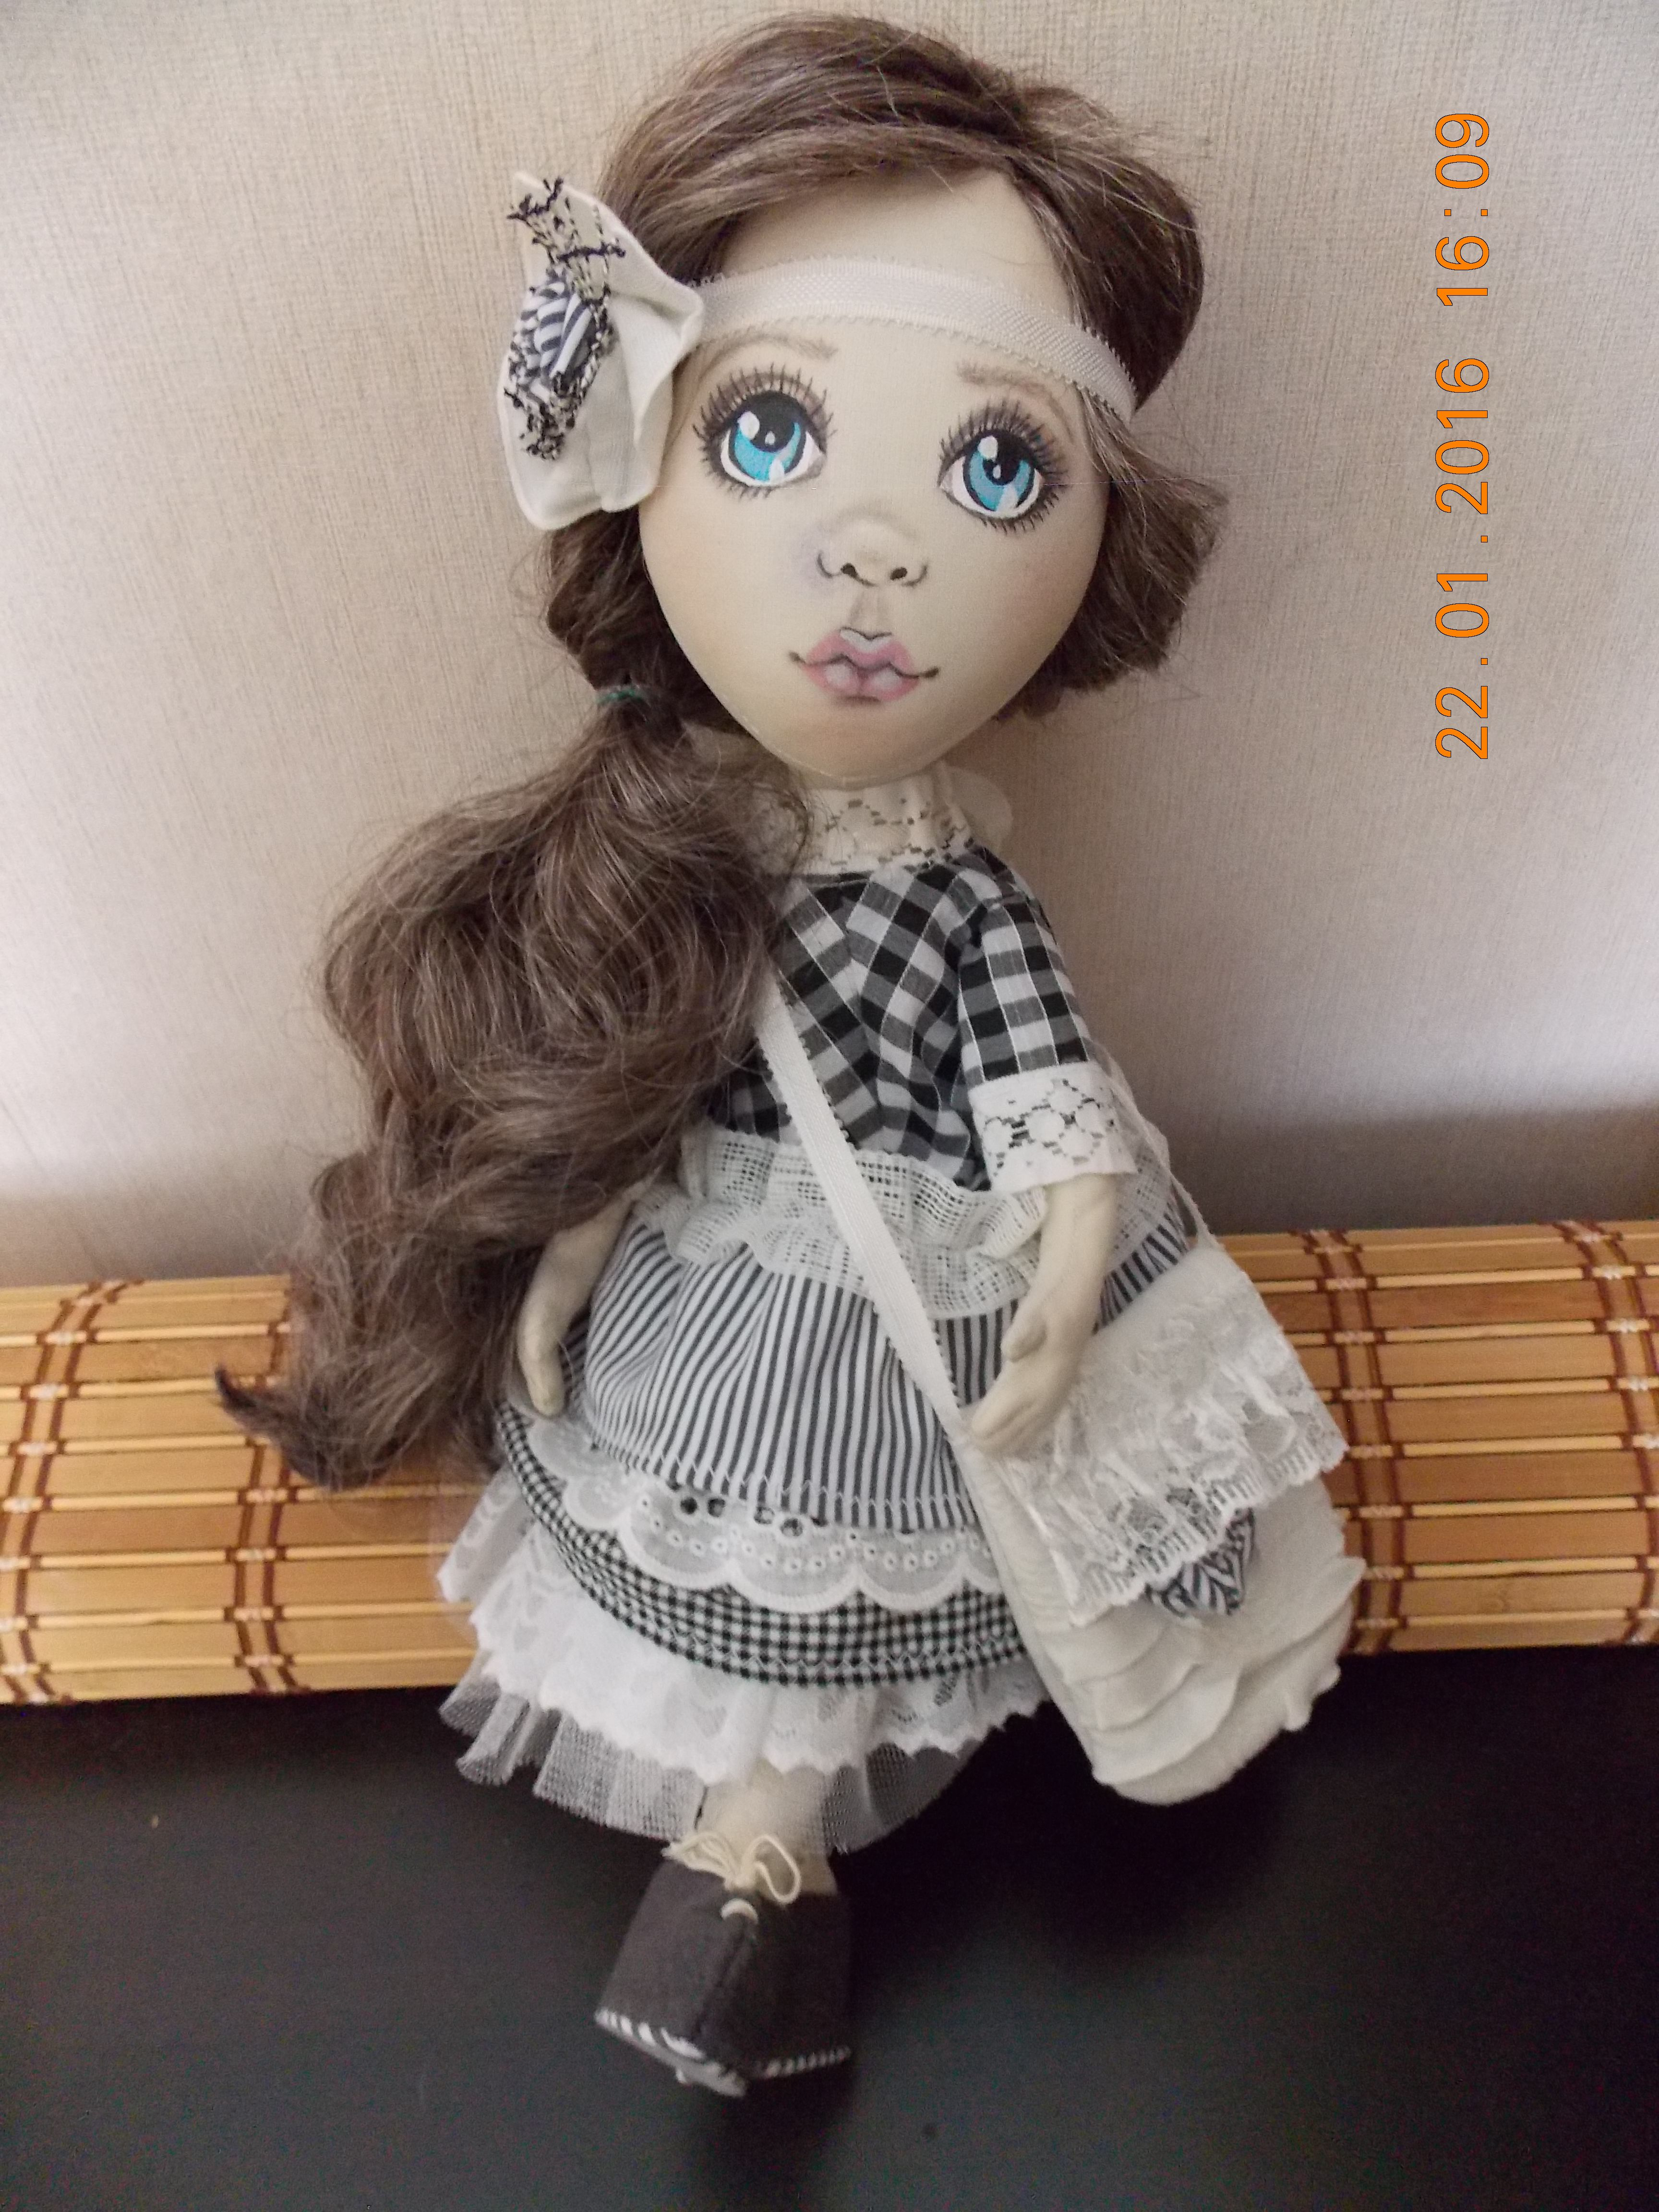 toy doll interior present accessory handmade